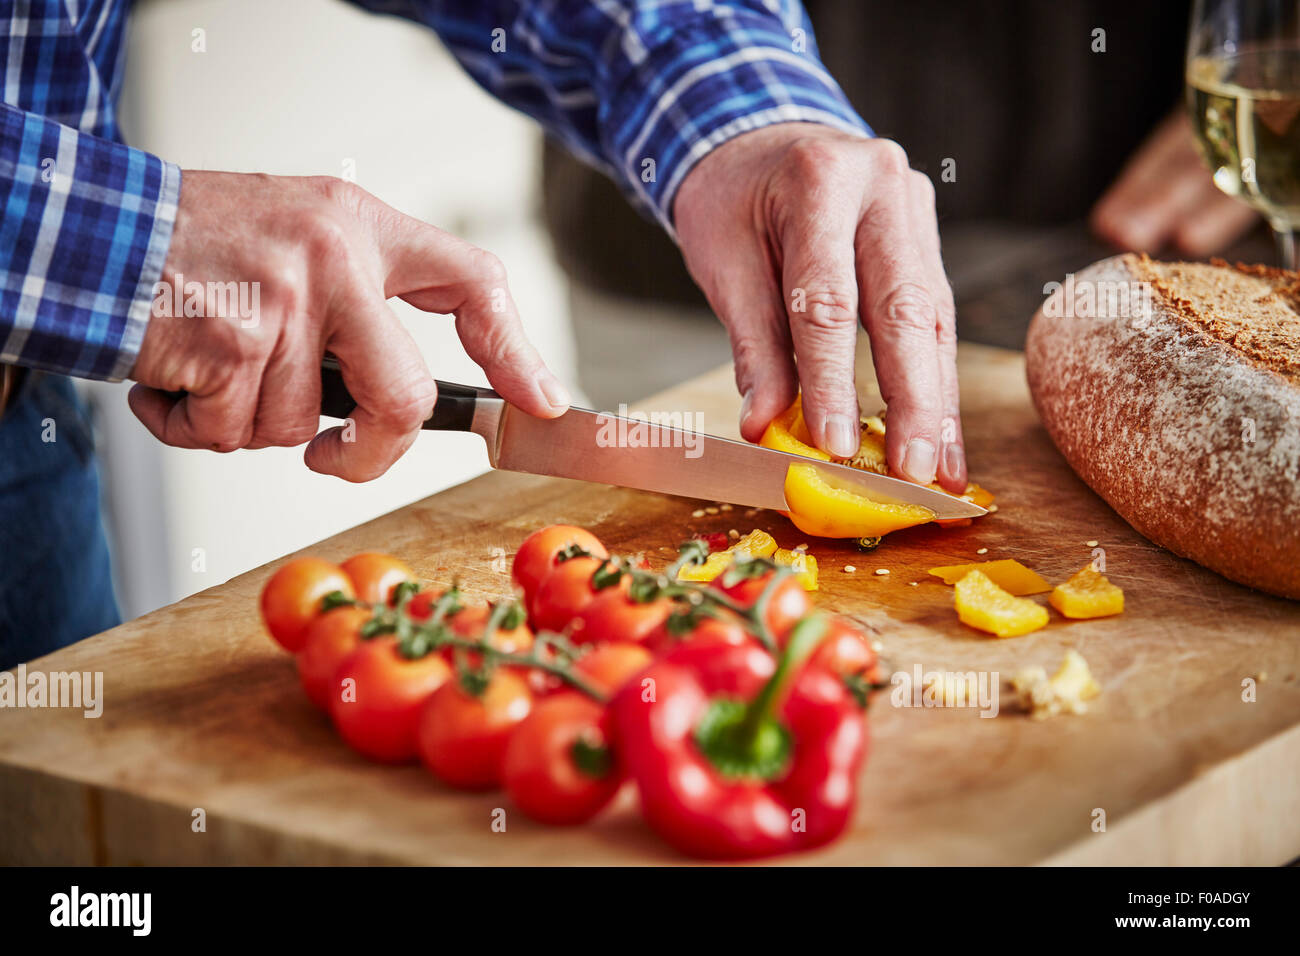 Man chopping vegetables, close up - Stock Image